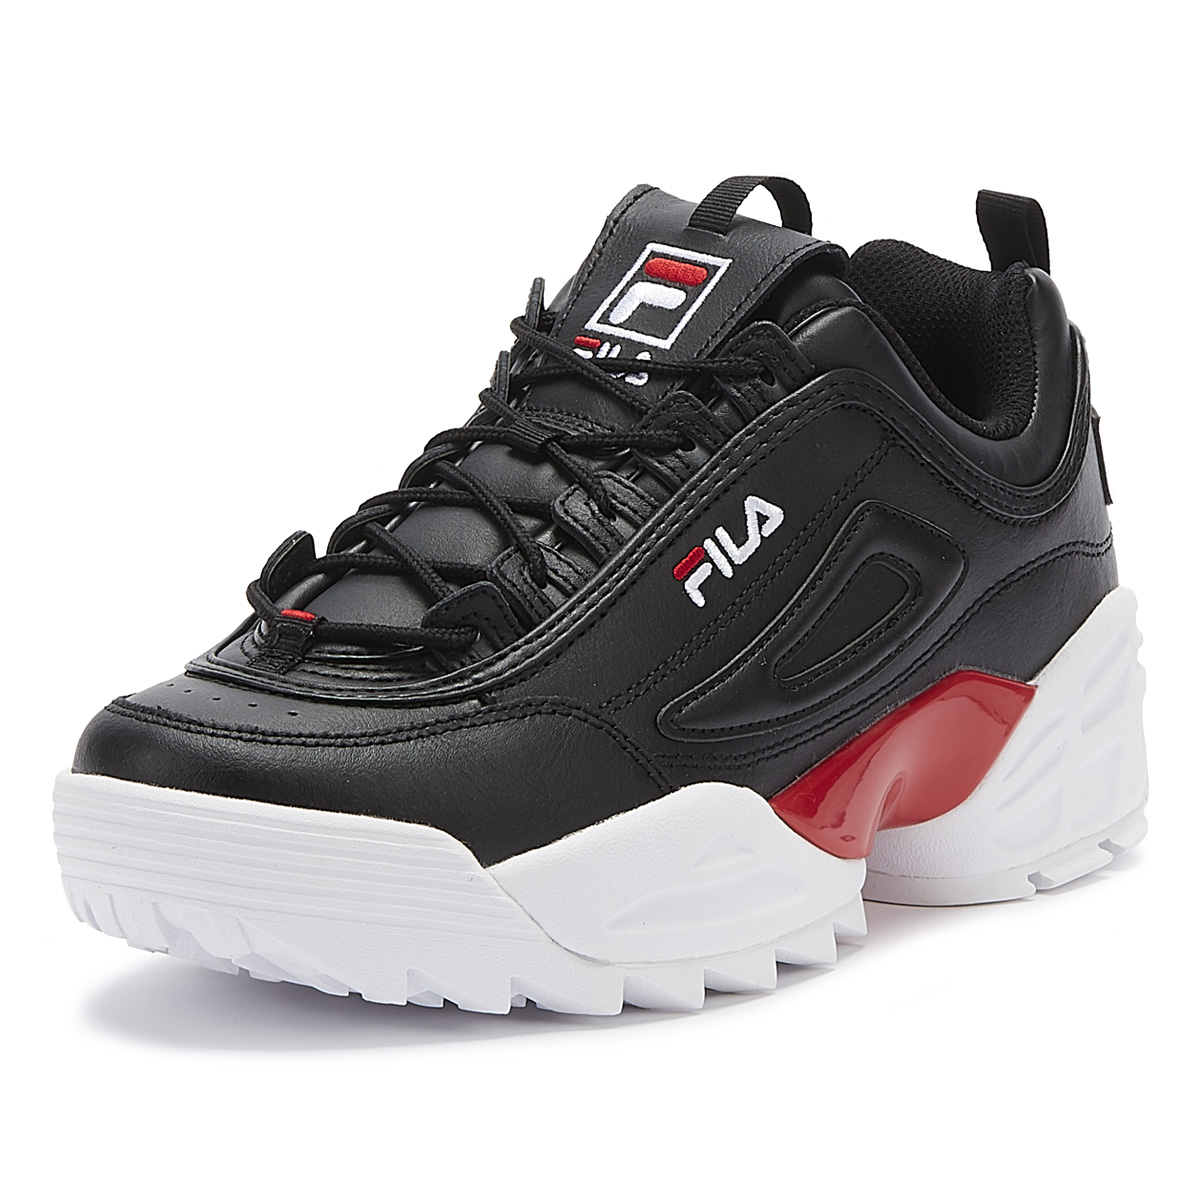 Details about Fila Disruptor II Lab Mens Black Red White Trainers Lace Up Casual Shoes